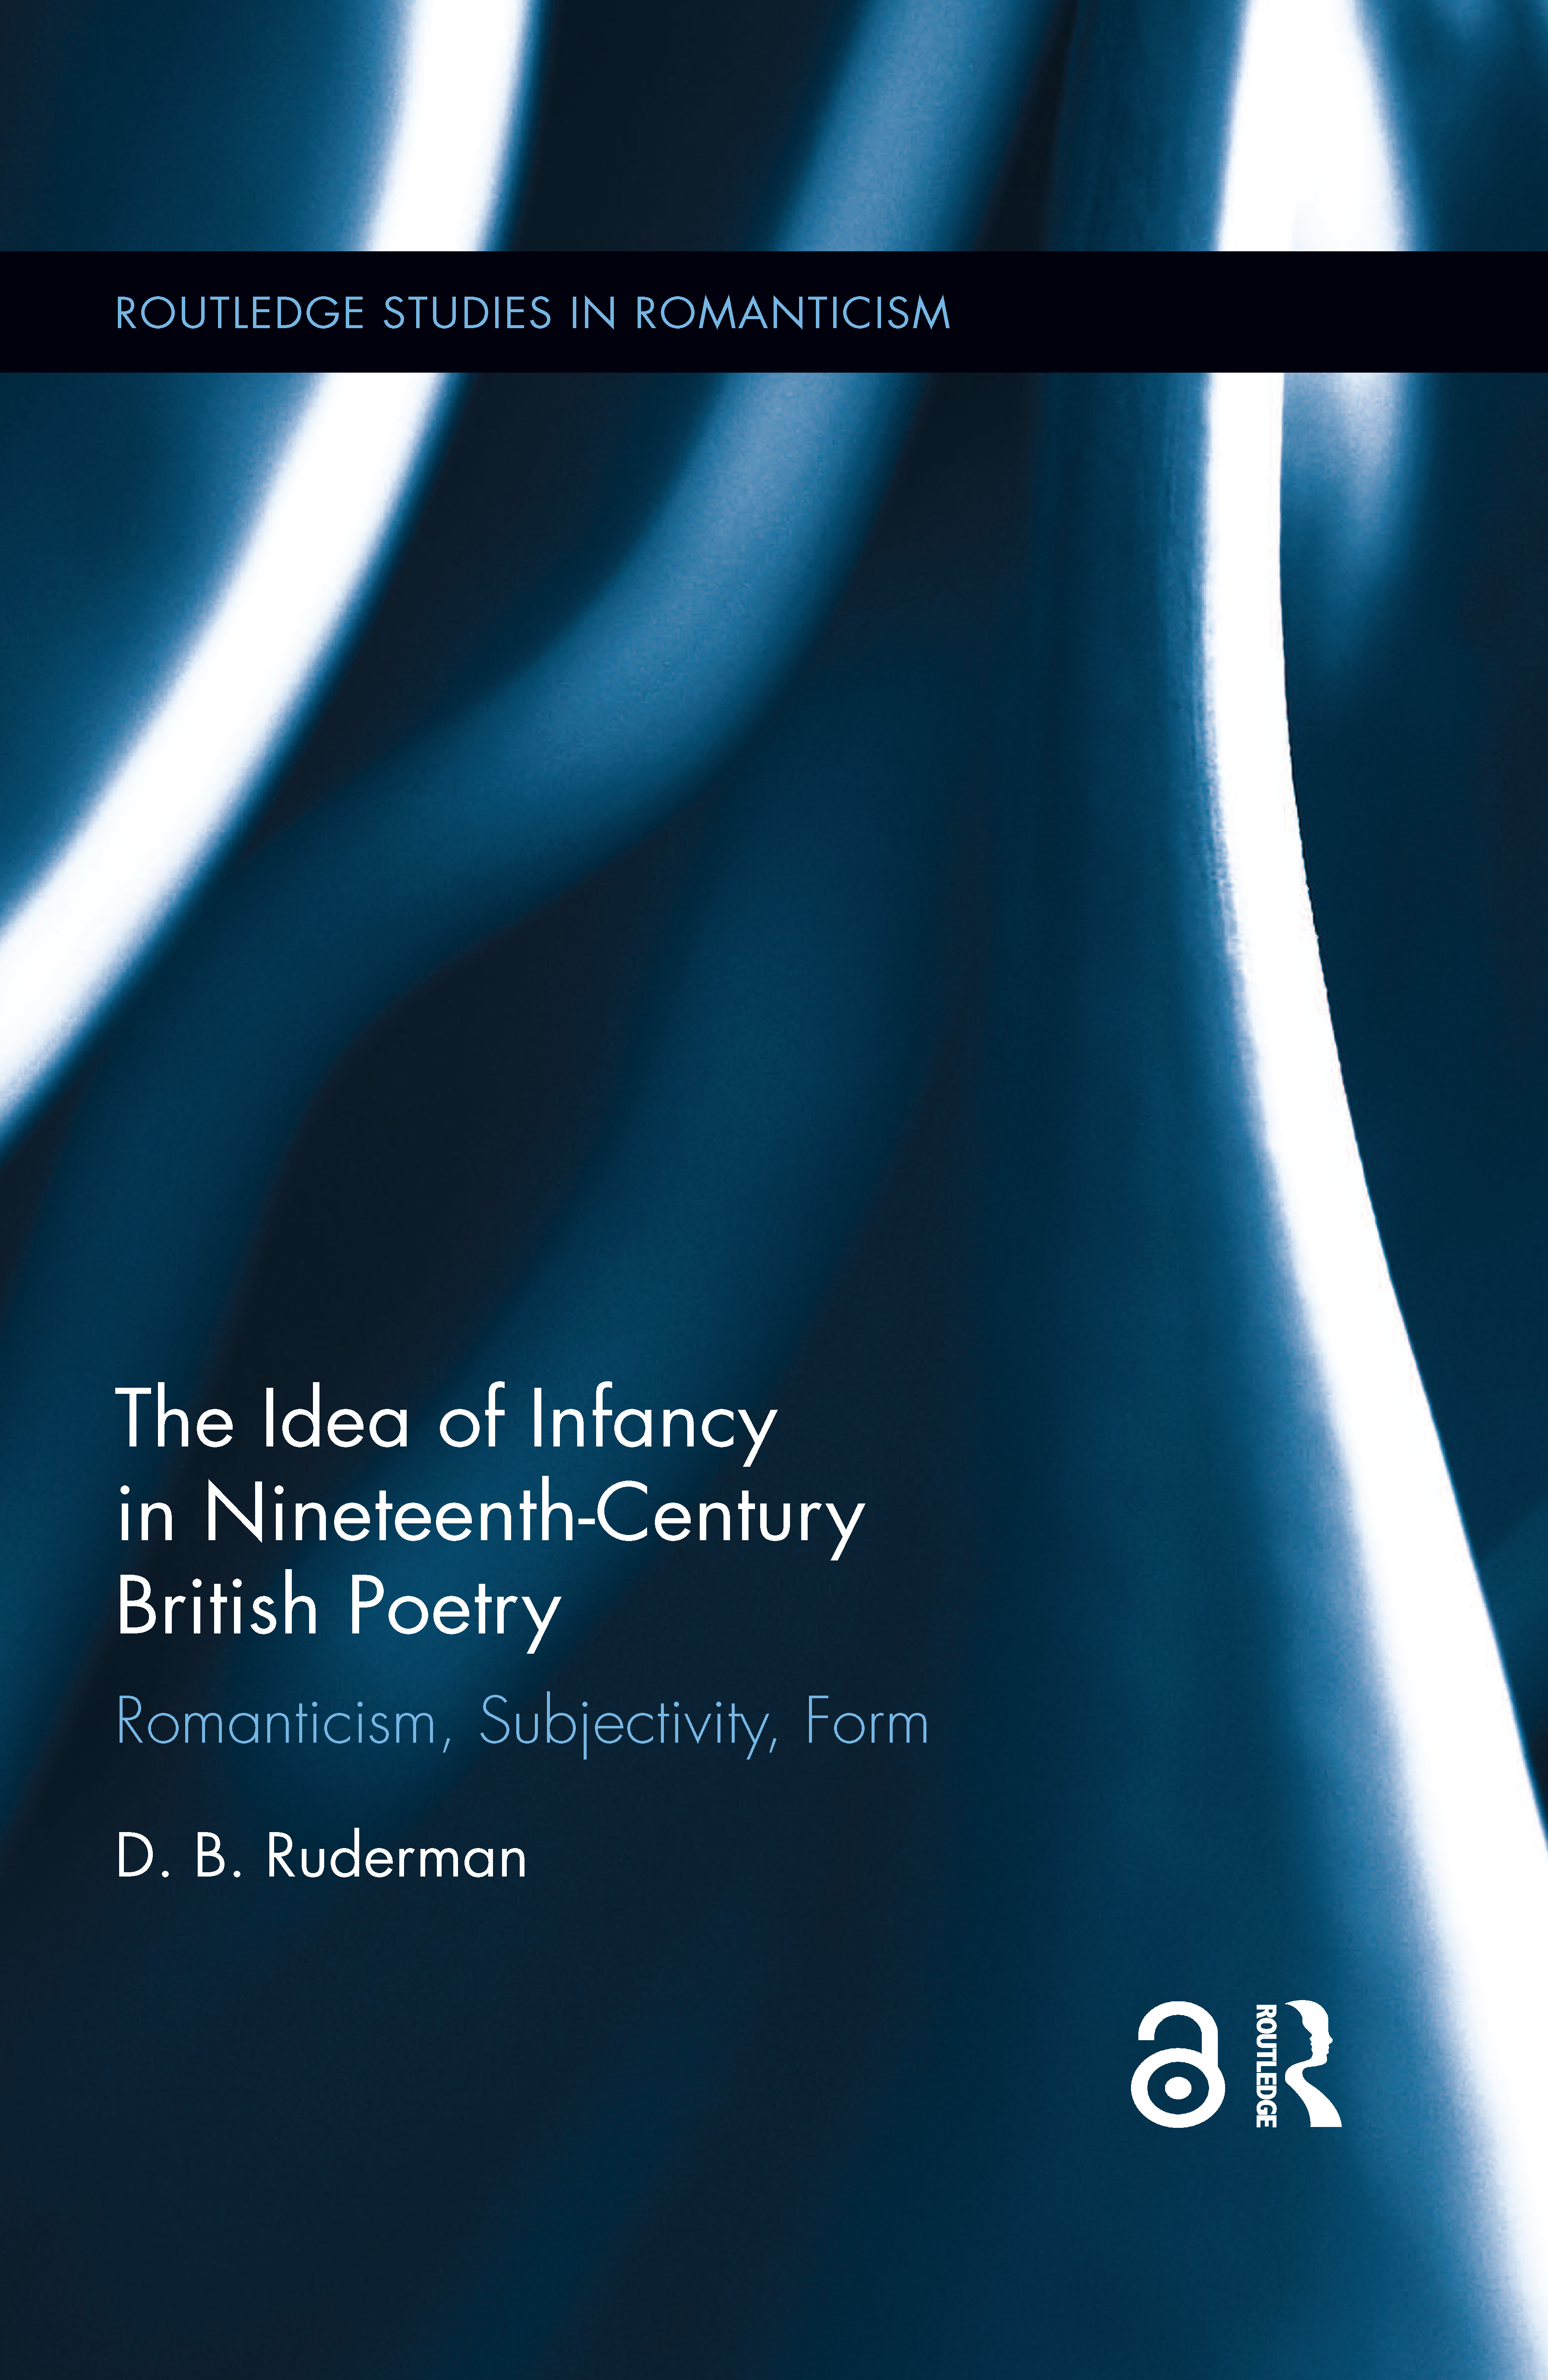 The Idea of Infancy in Nineteenth-Century British Poetry: Romanticism, Subjectivity, Form book cover